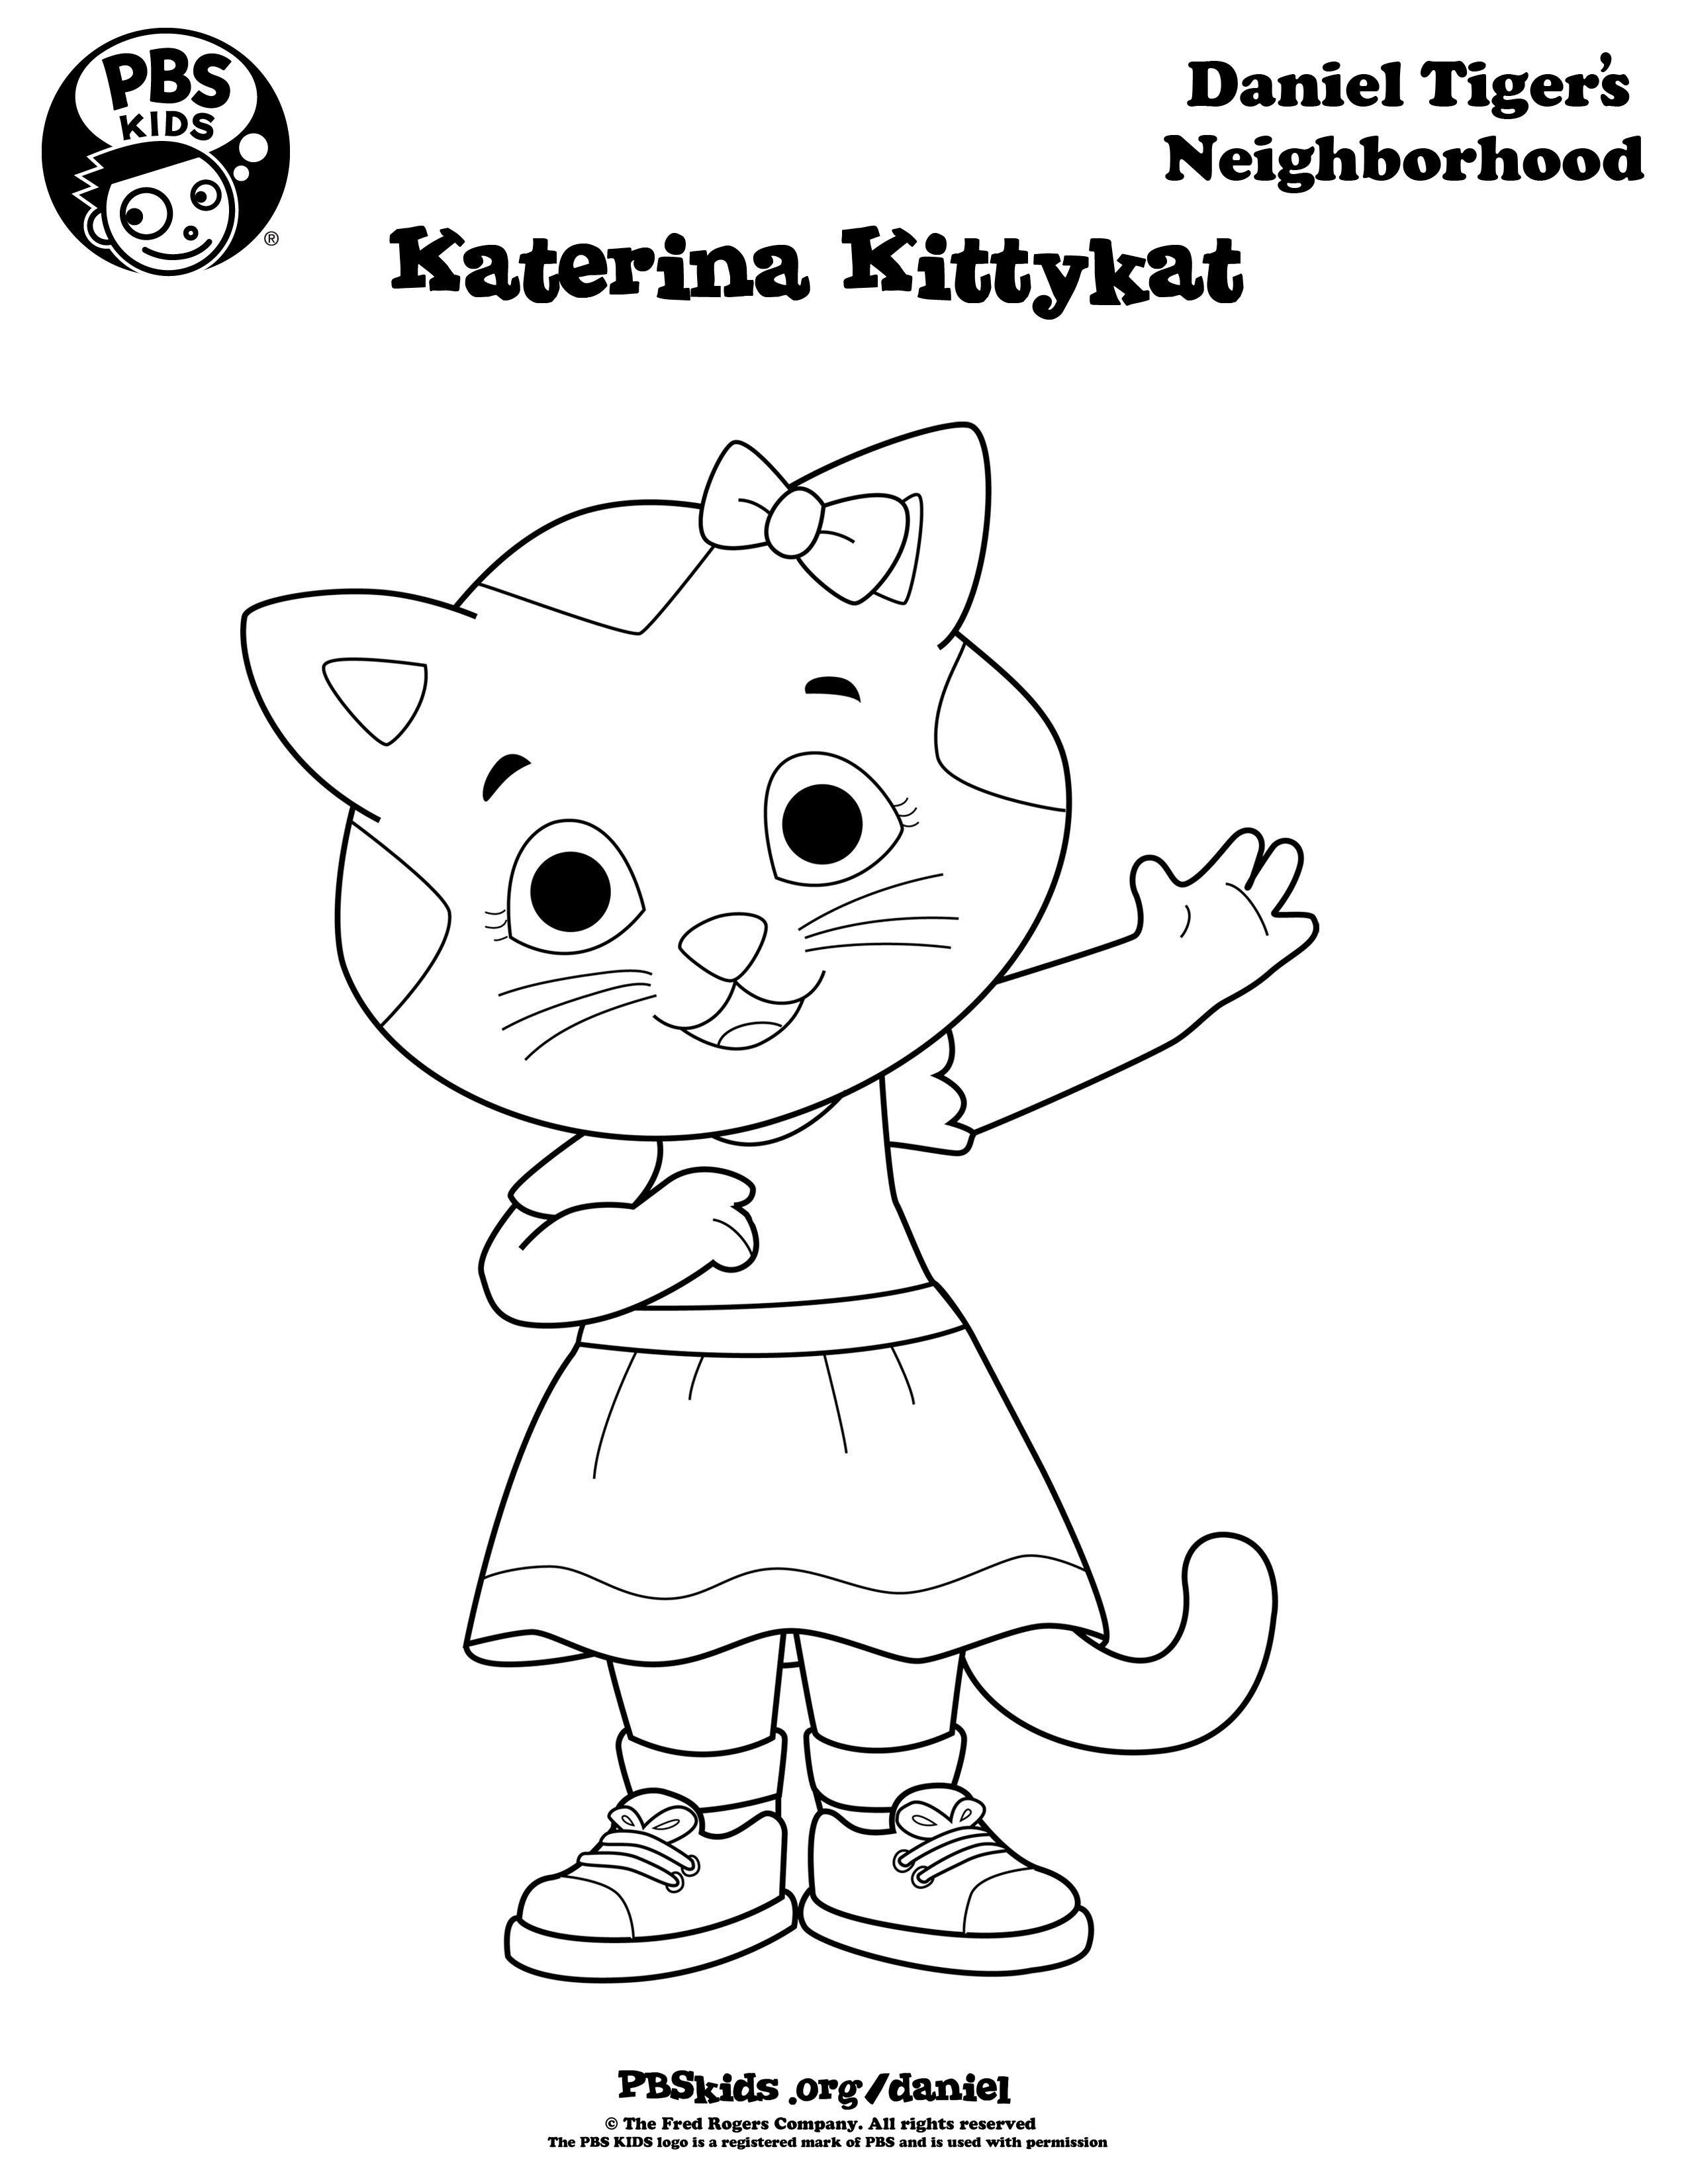 Coloring Ideas : Daniel Tiger Coloring Pages Best For Kids Ideas To - Free Printable Daniel Tiger Coloring Pages